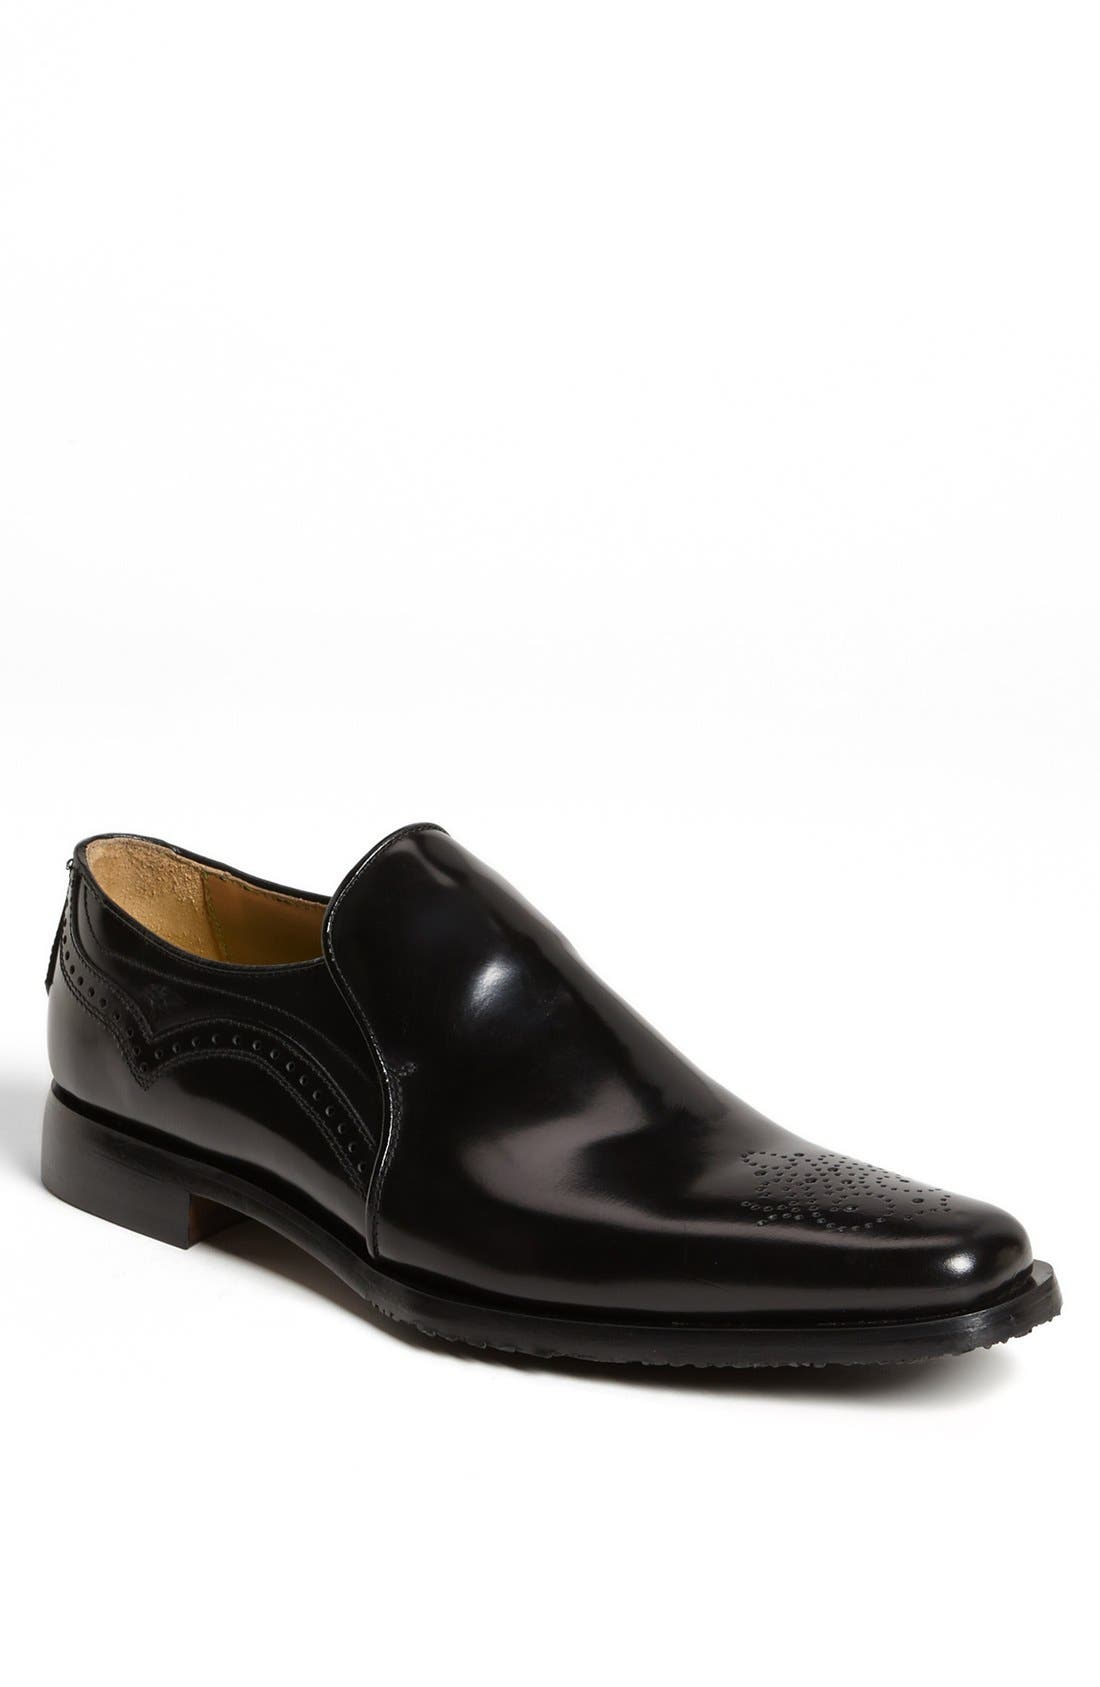 Alternate Image 1 Selected - Oliver Sweeney 'Ofano' Medallion Toe Loafer